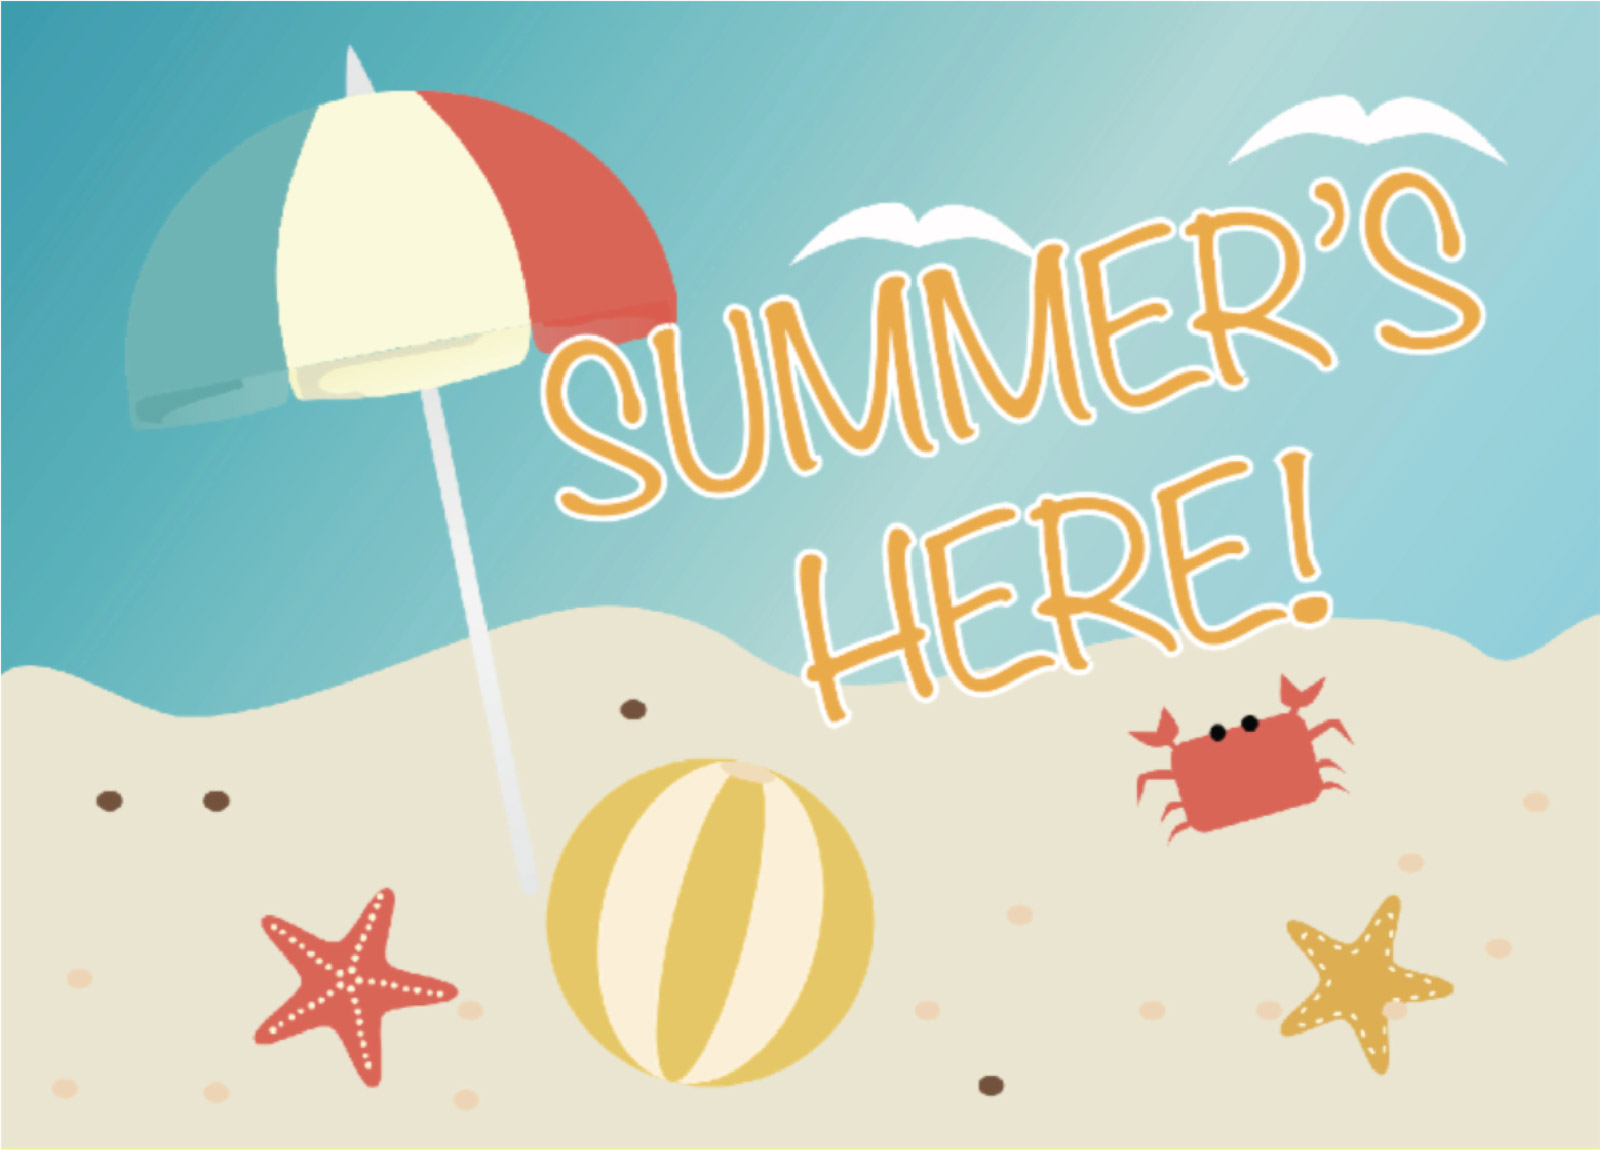 Check out our newsletter for June featuring our Summer Camp schedule and other fun summer events!